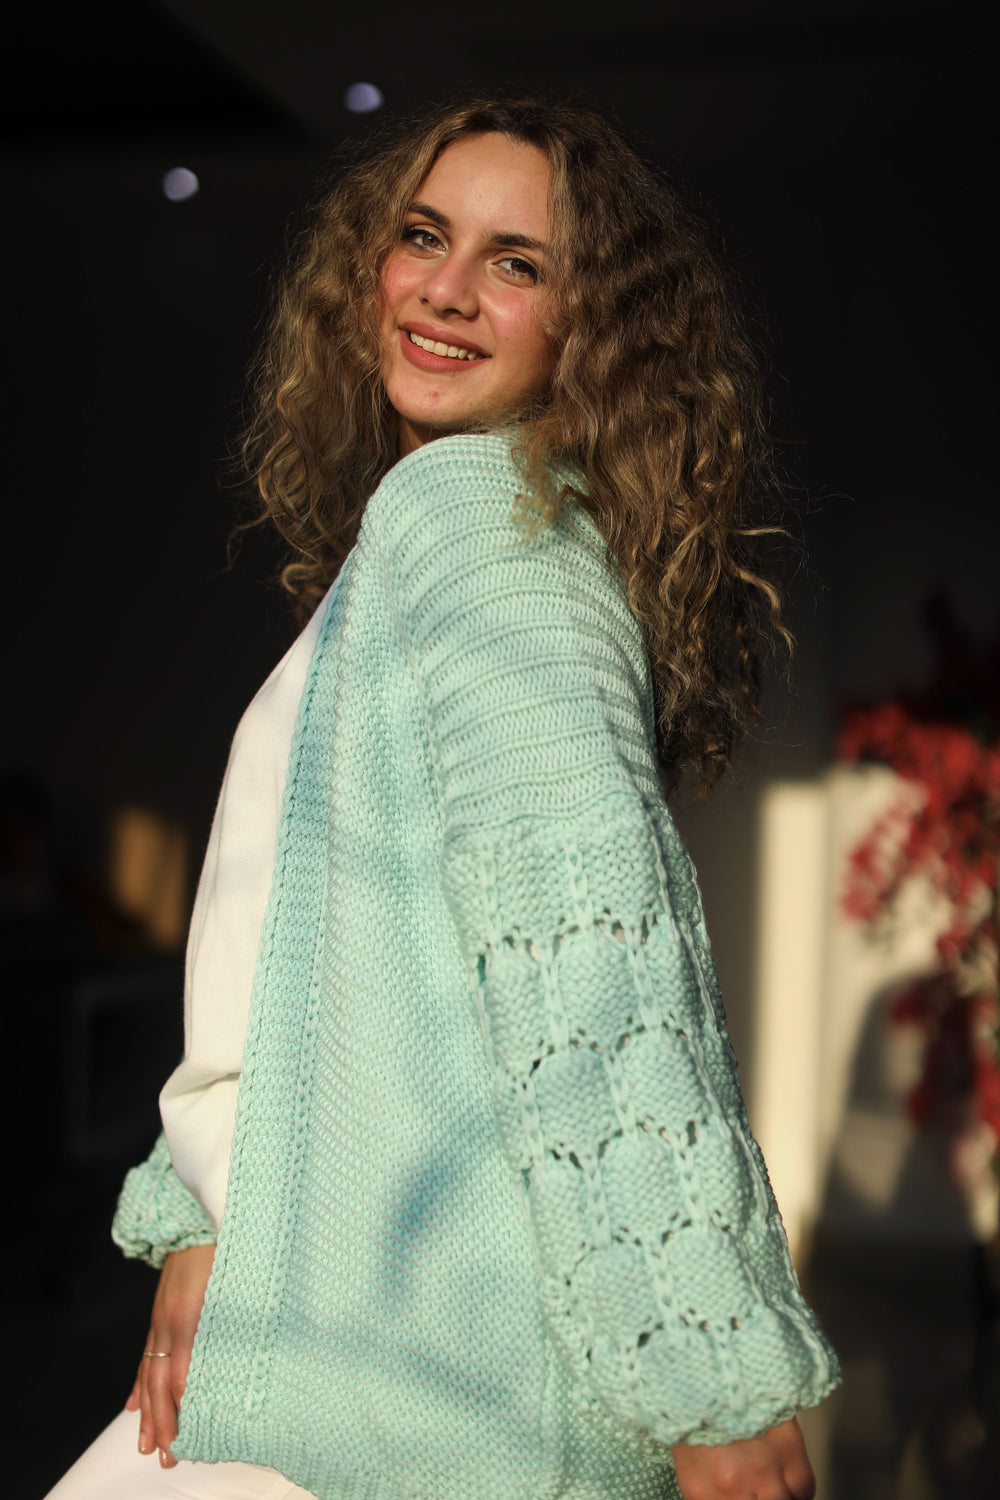 The Knitty Girl Heavyweight Cardigan Mint Green